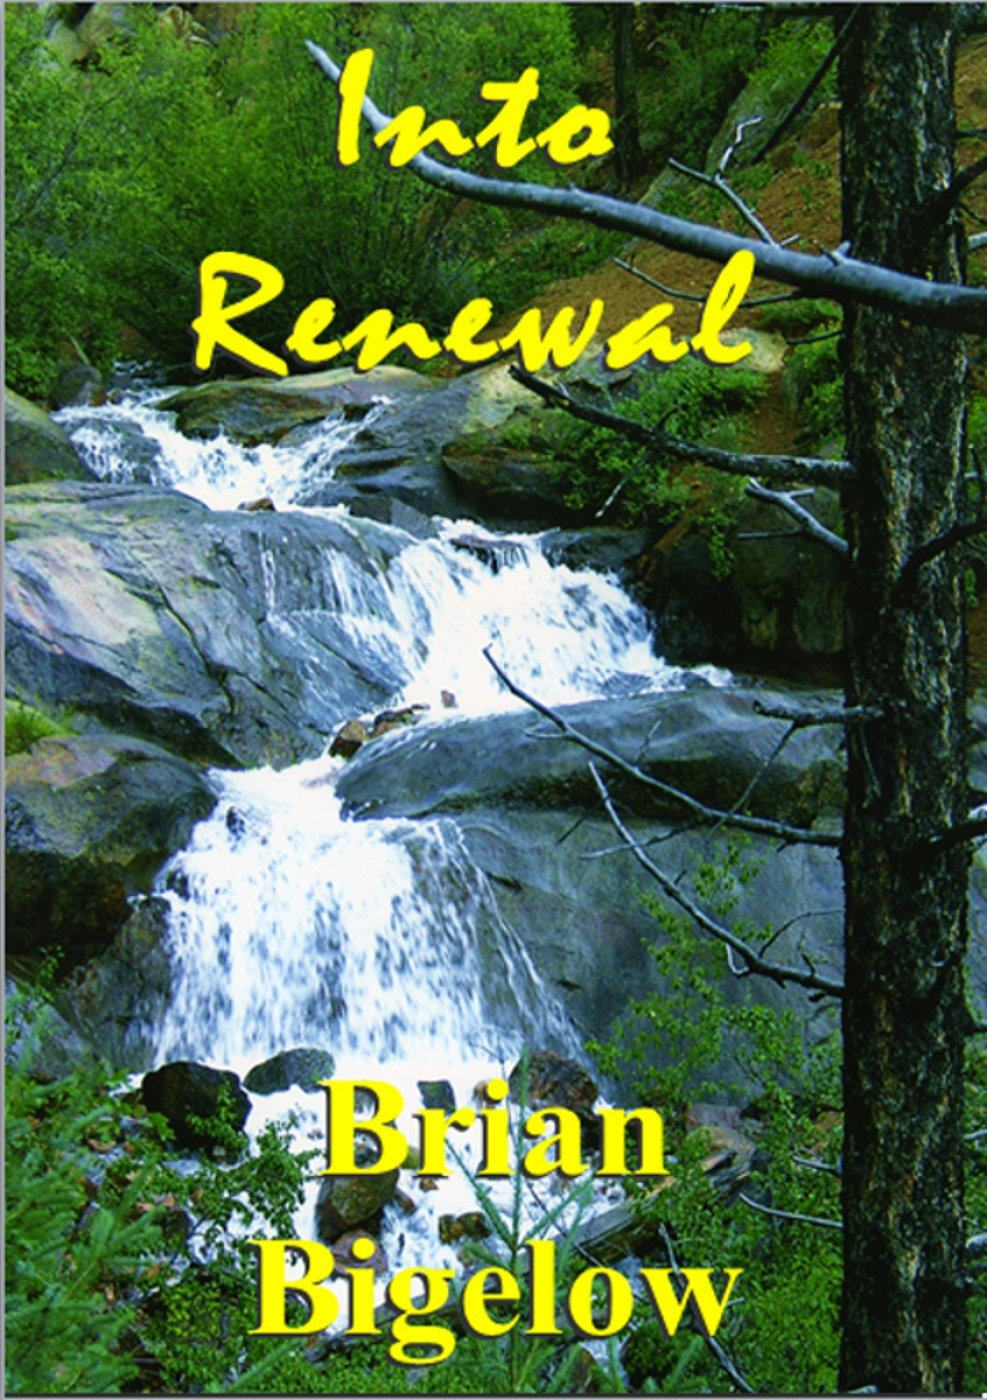 Into Renewal by Brian Bigelow